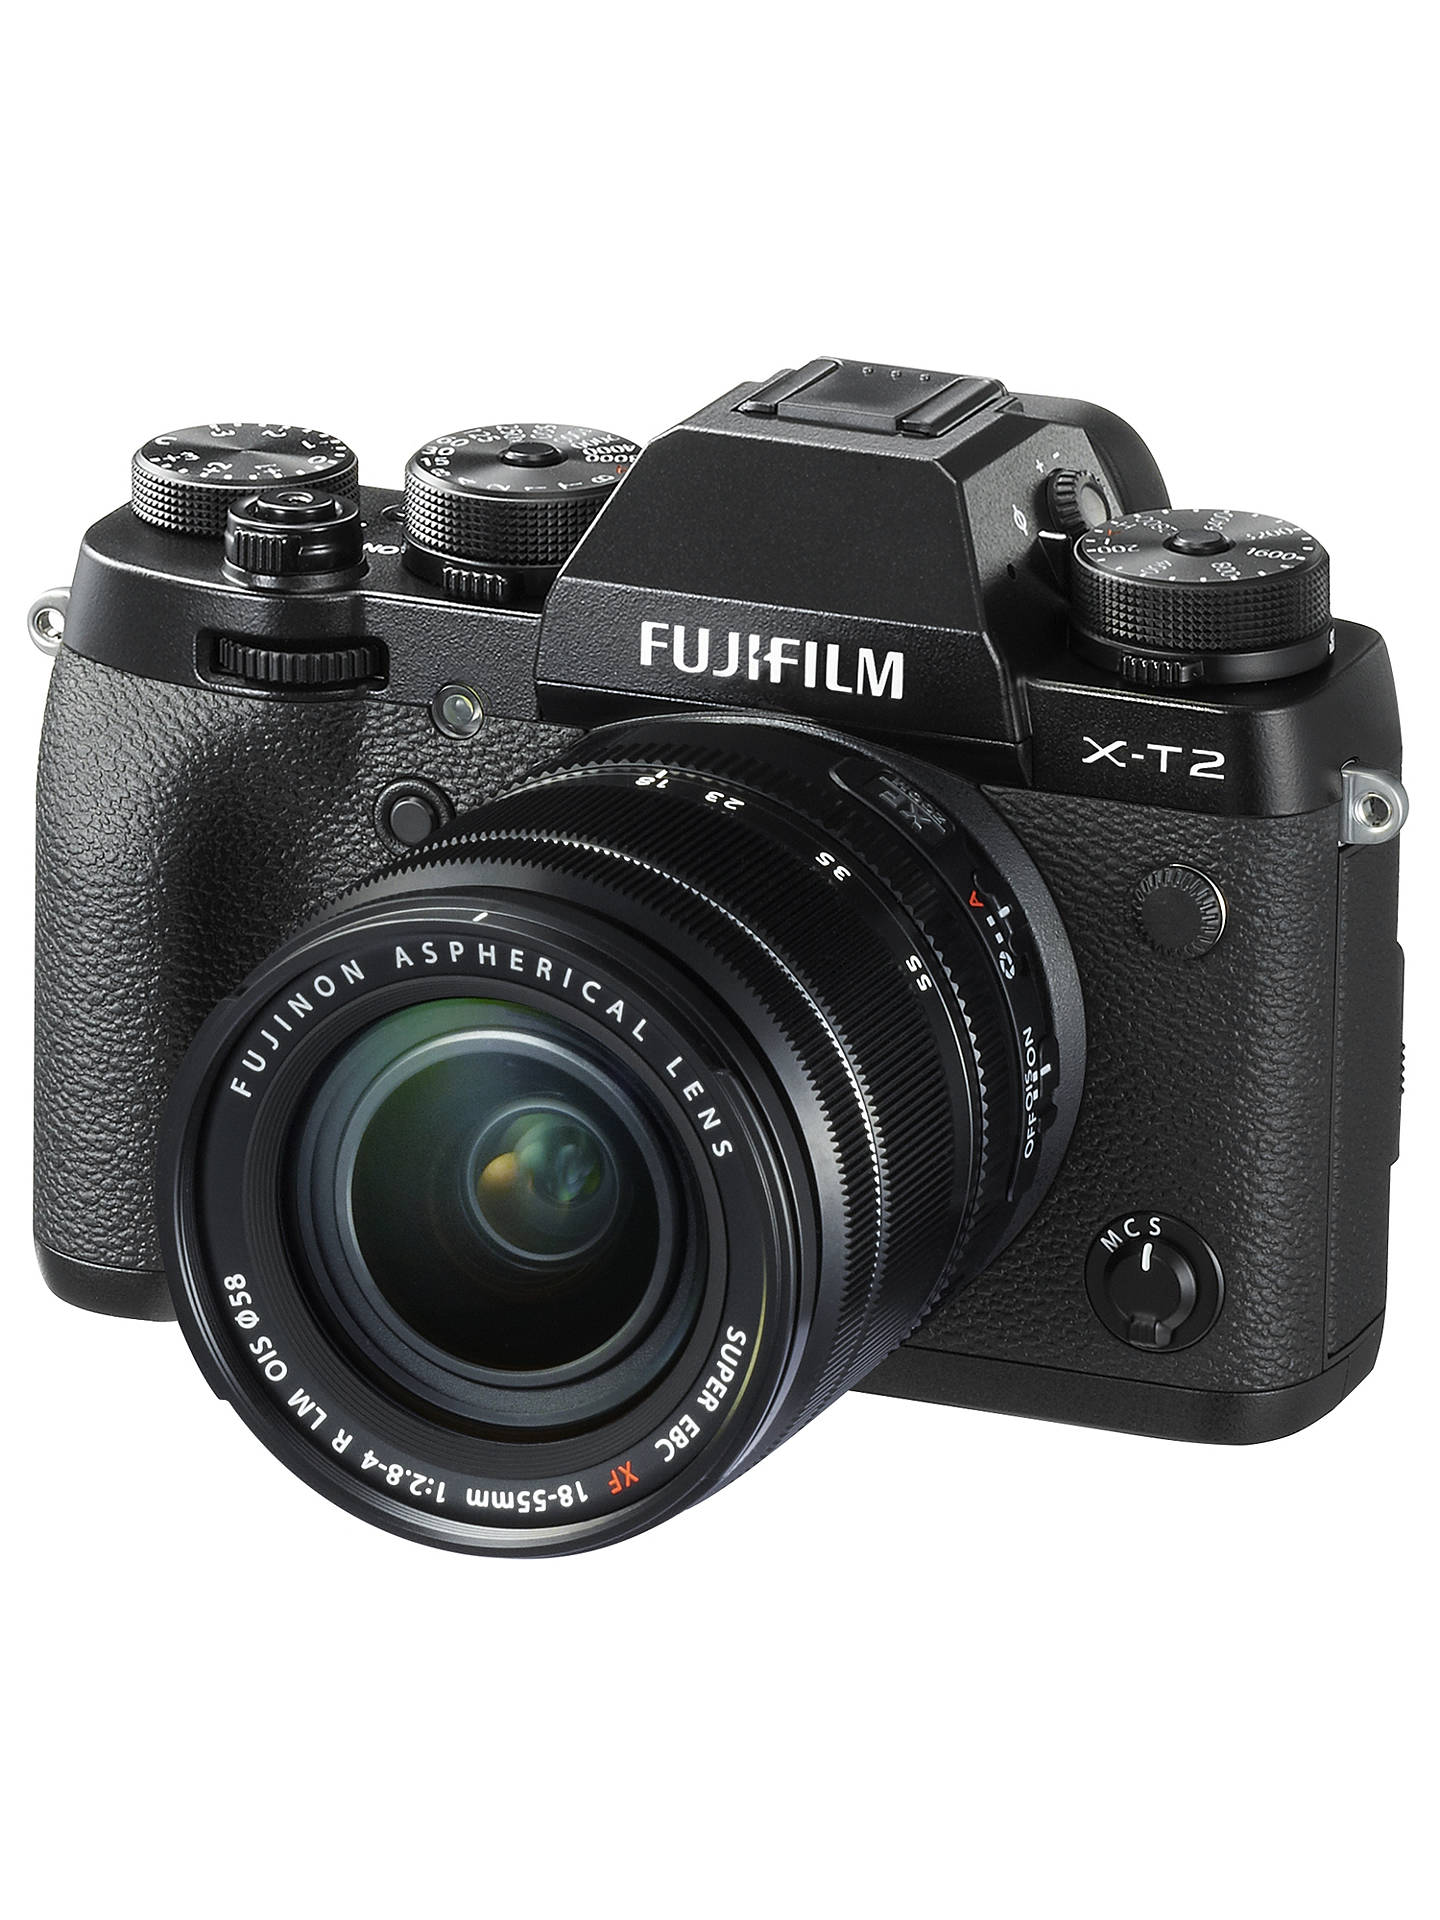 "BuyFujifilm X-T2 Compact System Camera with XF 18-55mm IS Lens, 4K Ultra HD, 24.3MP, Wi-Fi, OLED EVF, 3"" Tiltable LCD Screen Online at johnlewis.com"